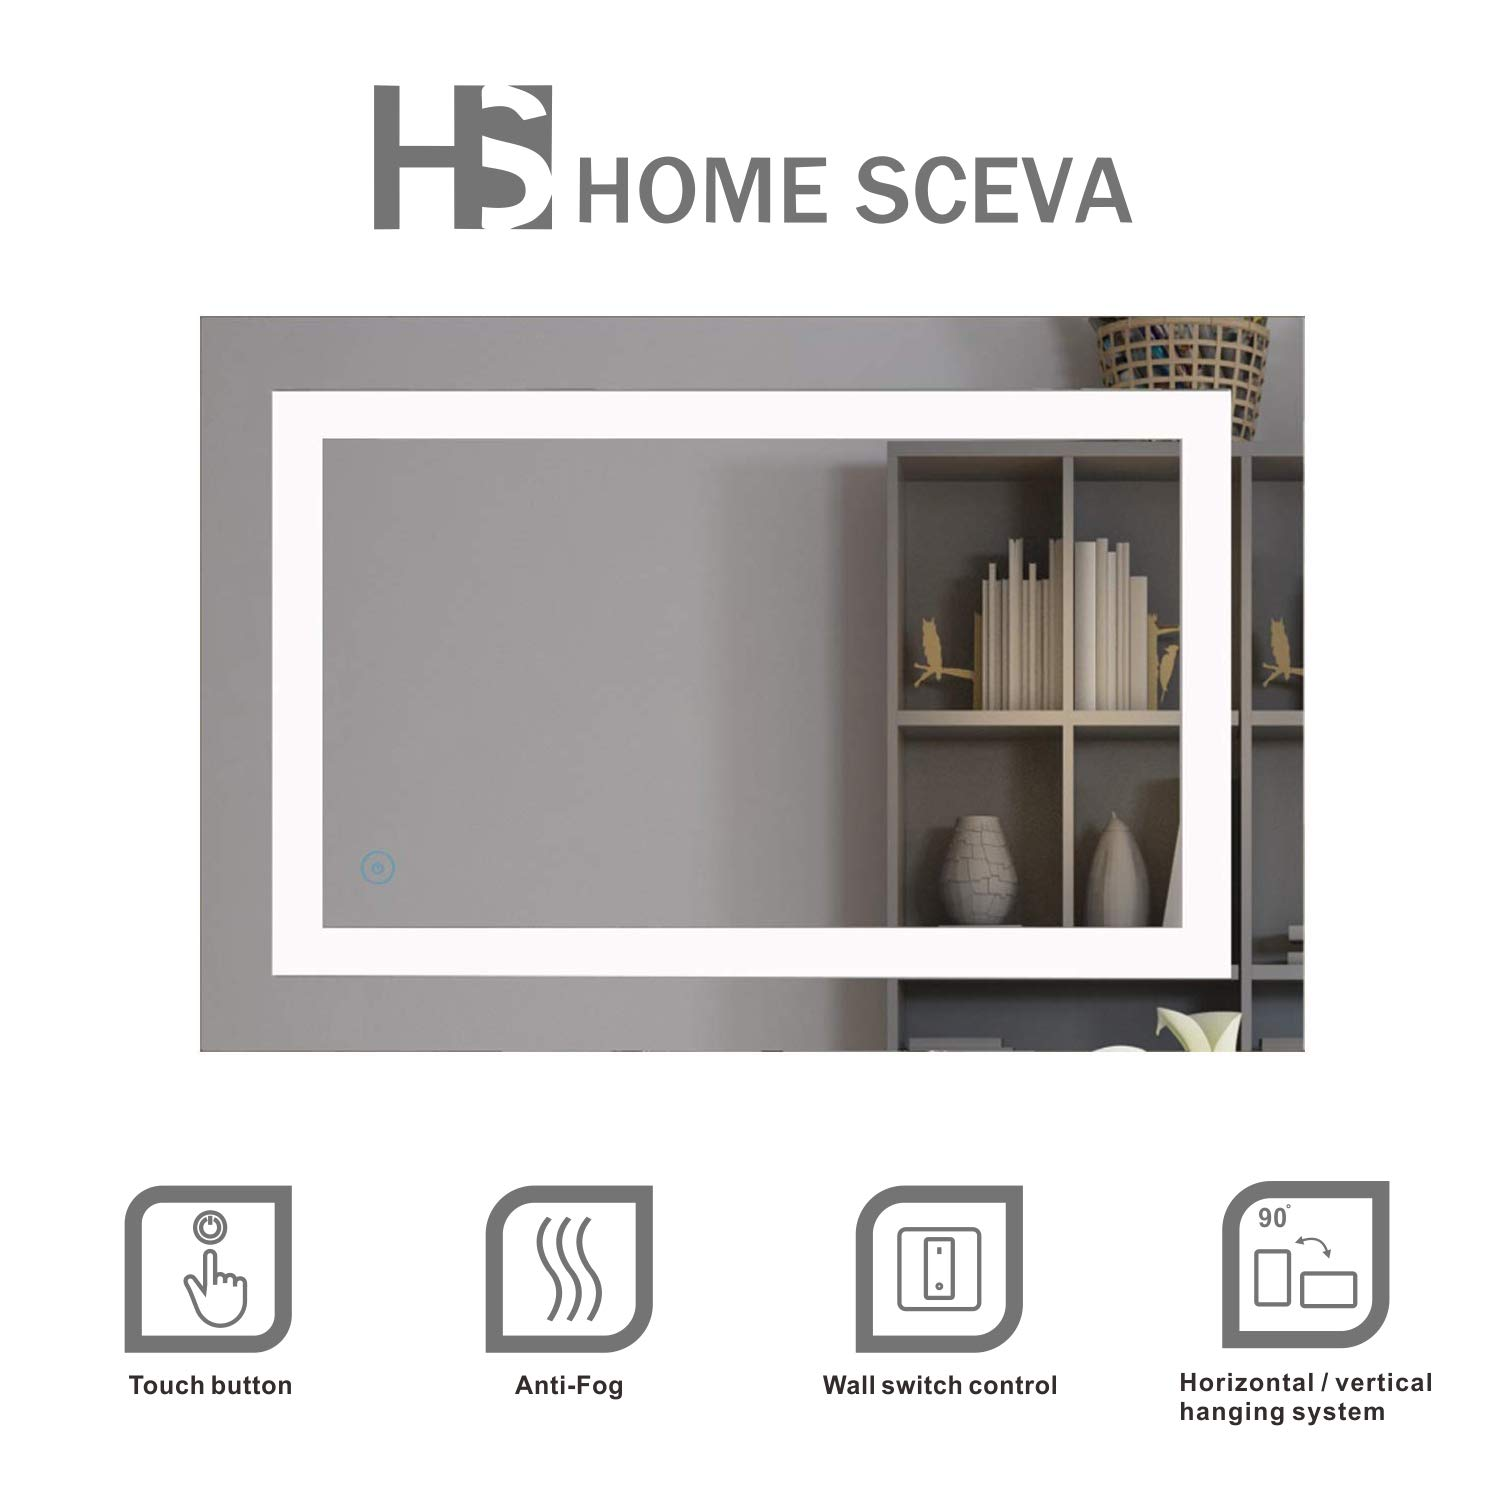 Home SCEVA LED Lighted Mirrors Vanity Bathroom Frameless Backlit Wall Mirror Anti Fog Touch Button 35.4 x 23.6 in by HS HOME SCEVA